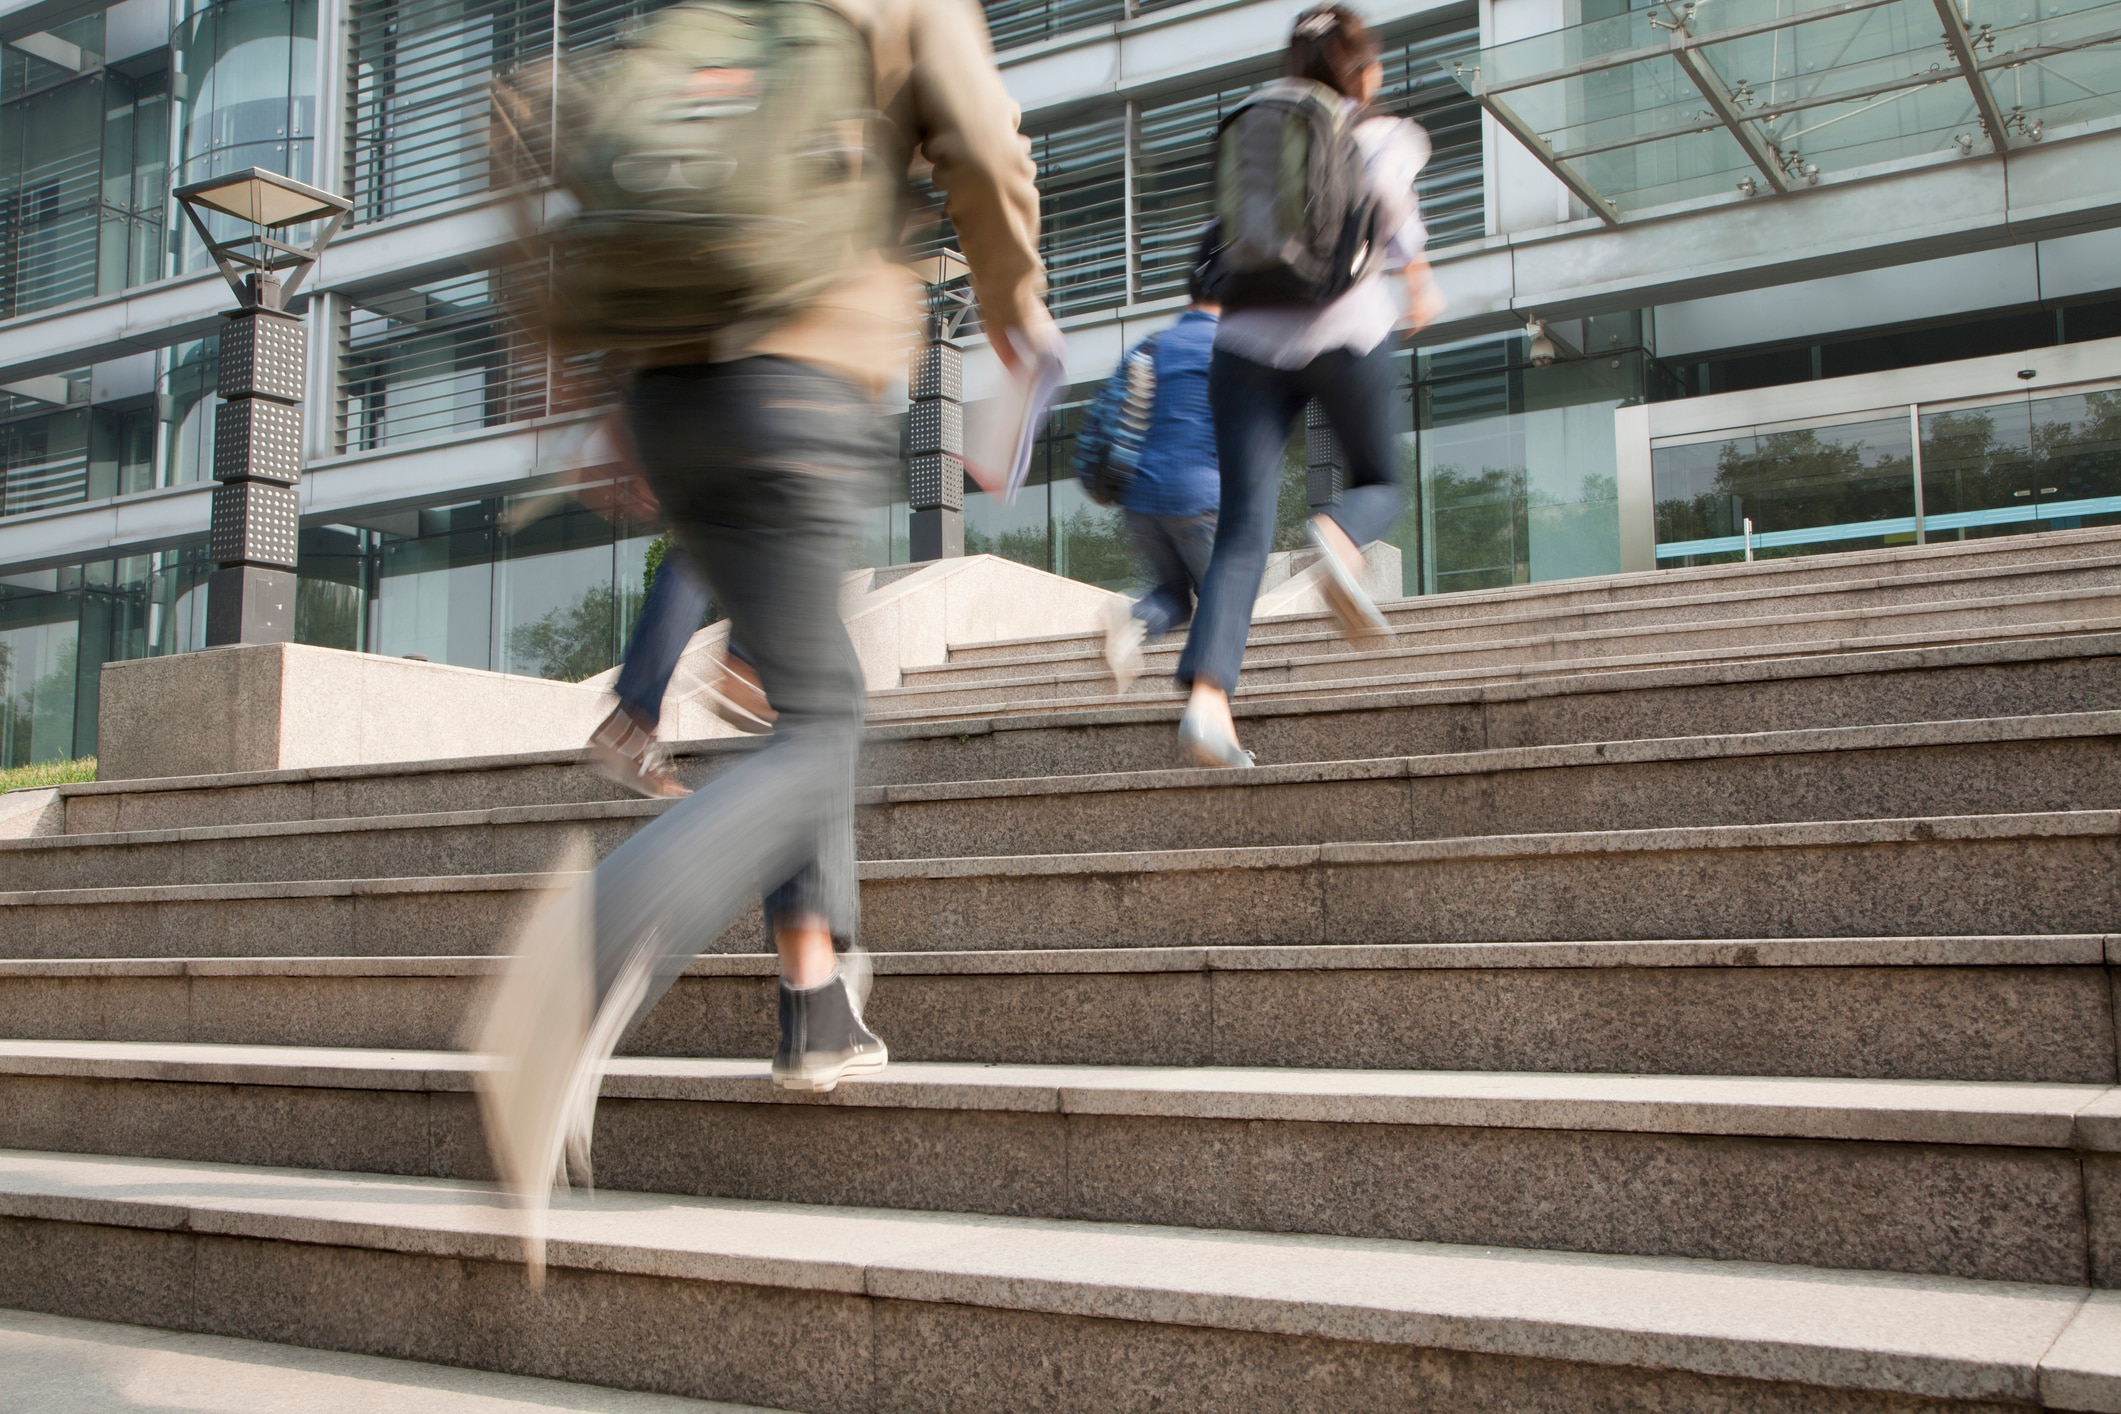 Four people outside running up a flight of stairs